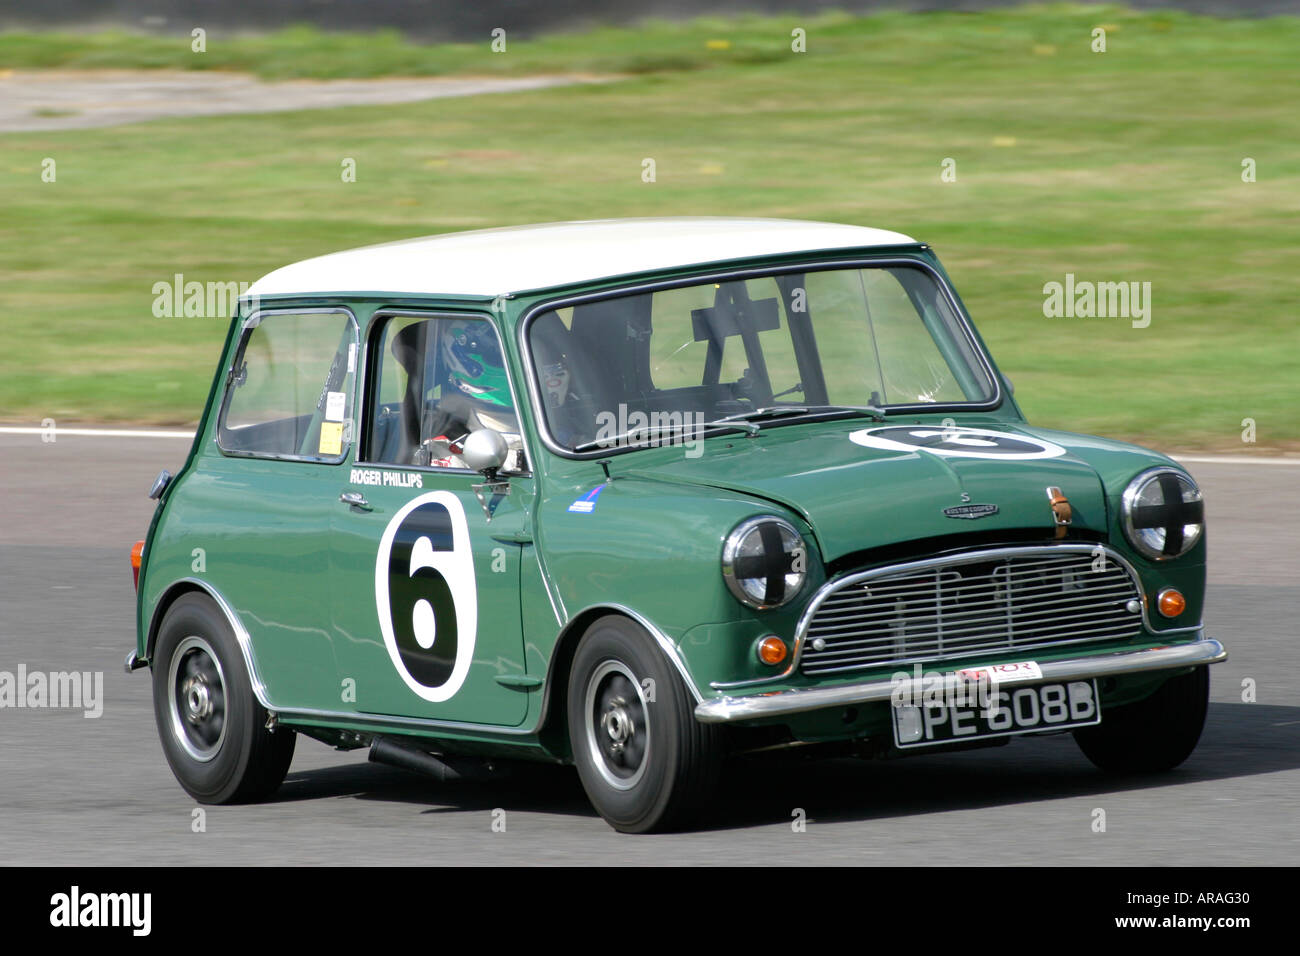 1964 austin mini cooper s at goodwood revival sussex uk stock photo royalty free image. Black Bedroom Furniture Sets. Home Design Ideas